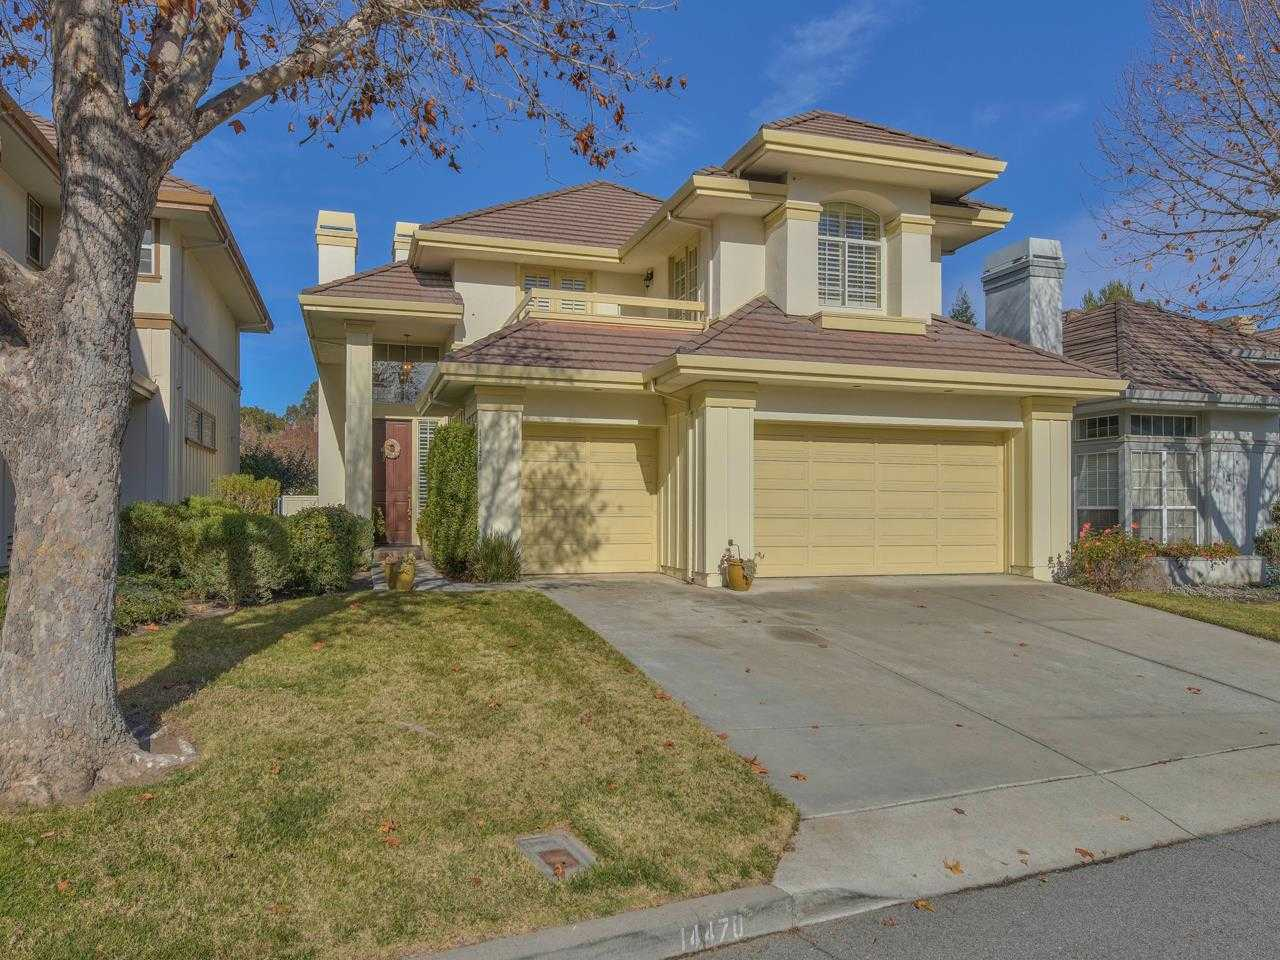 $979,500 - 4Br/3Ba -  for Sale in Salinas